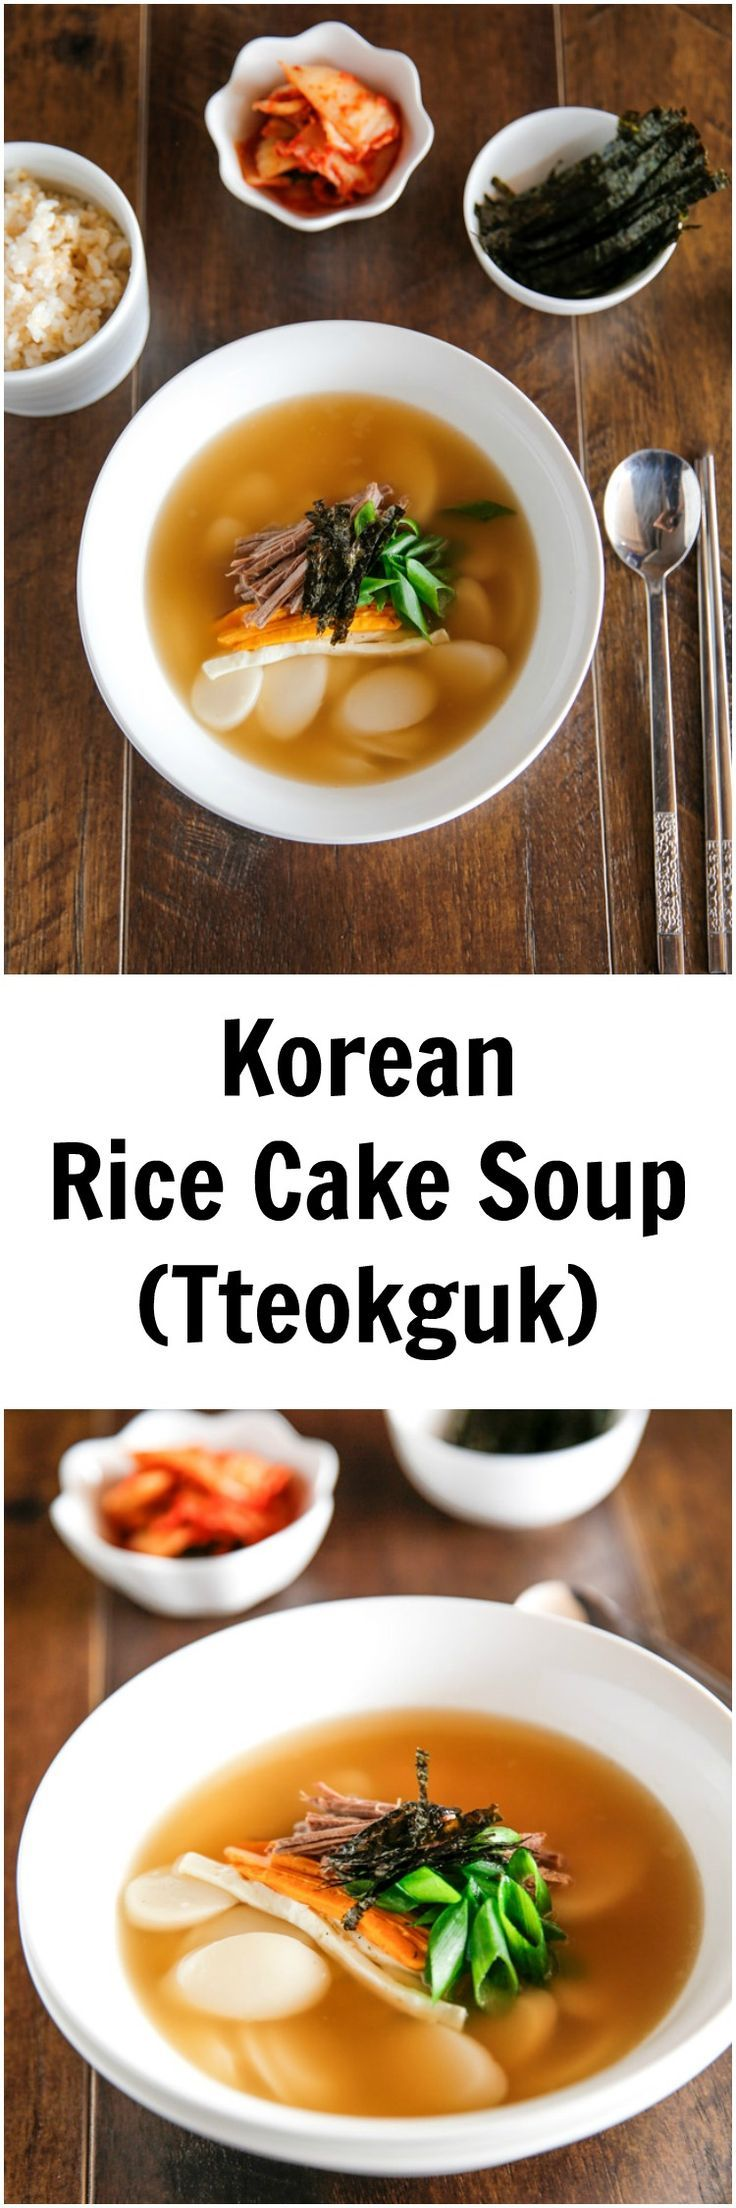 How to make authentic Korean rice cake soup. It's hearty and comforting. Just perfect for cold wintery days. On a side note, this is a must have food on Korean New Year's Day!